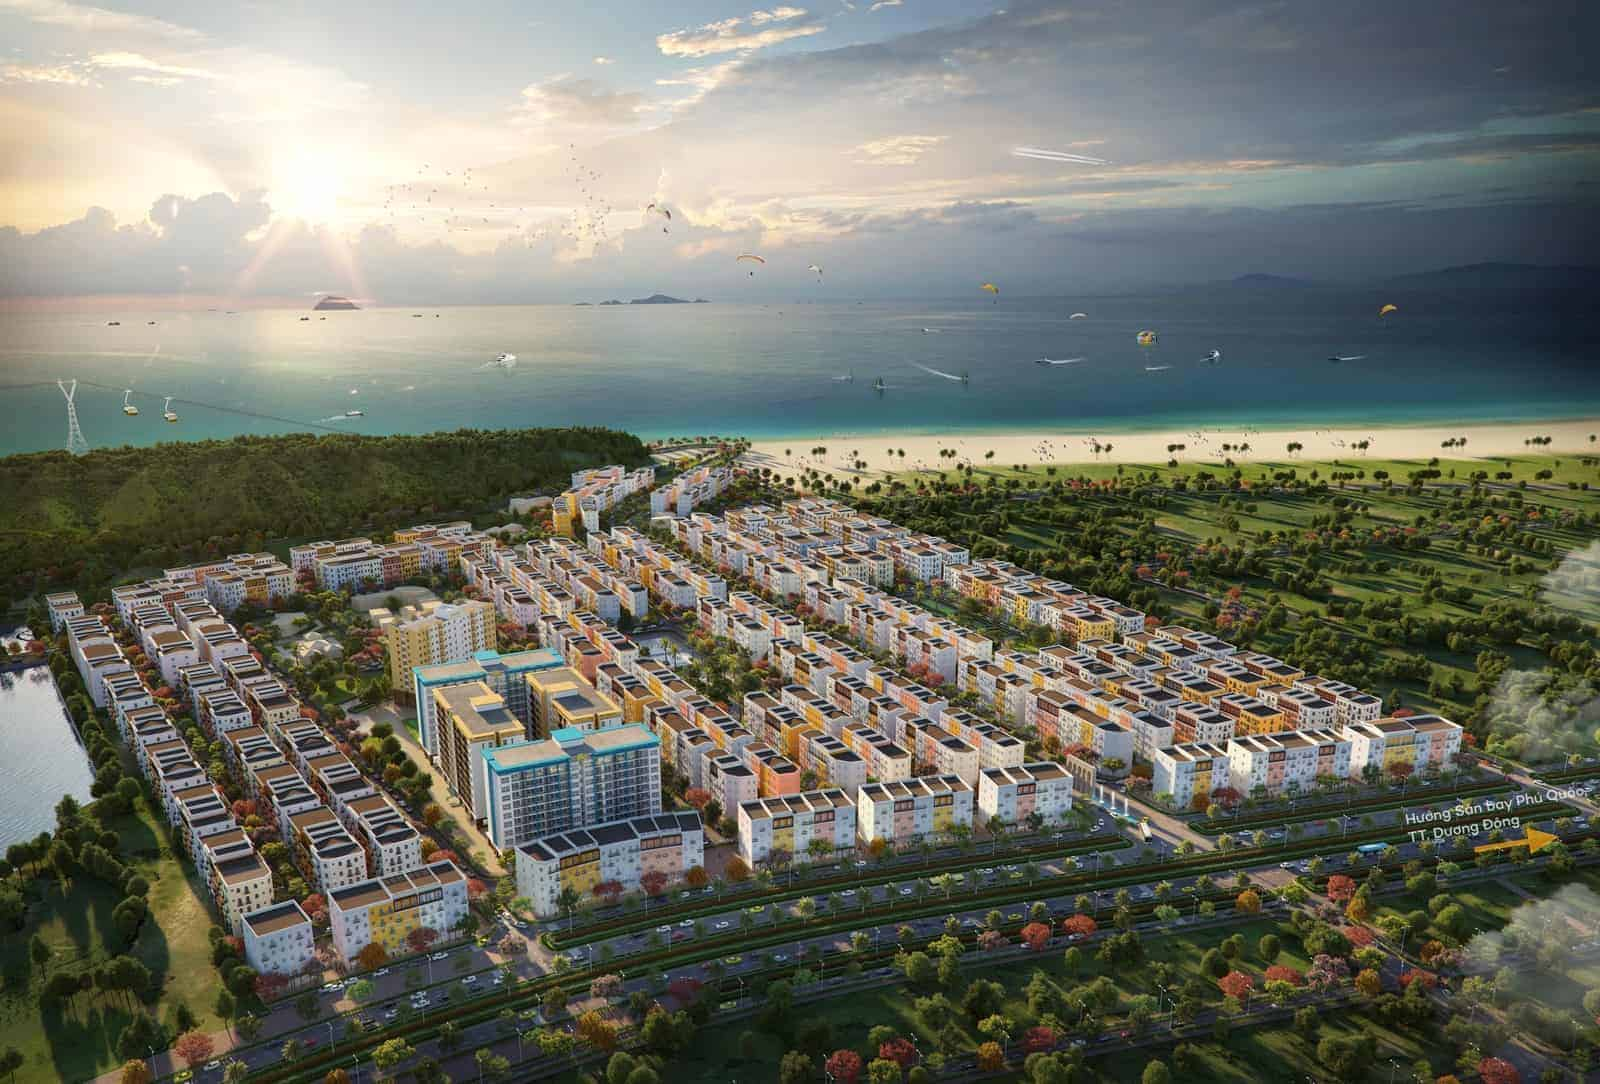 Sun Grand City 35ha New An Thoi